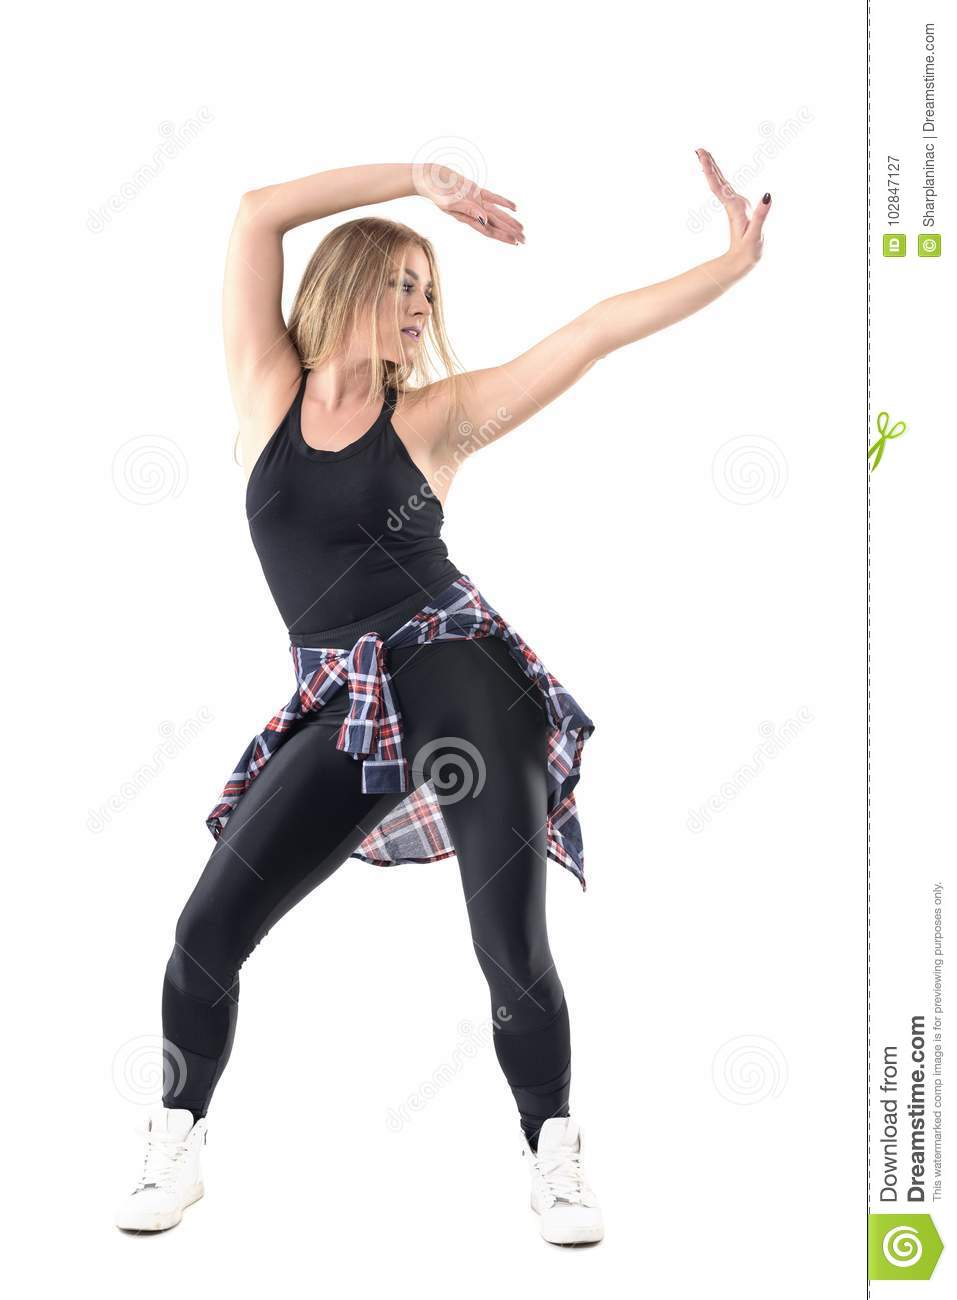 Attractive jazz dance or dancehall female dancing with arms up looking away